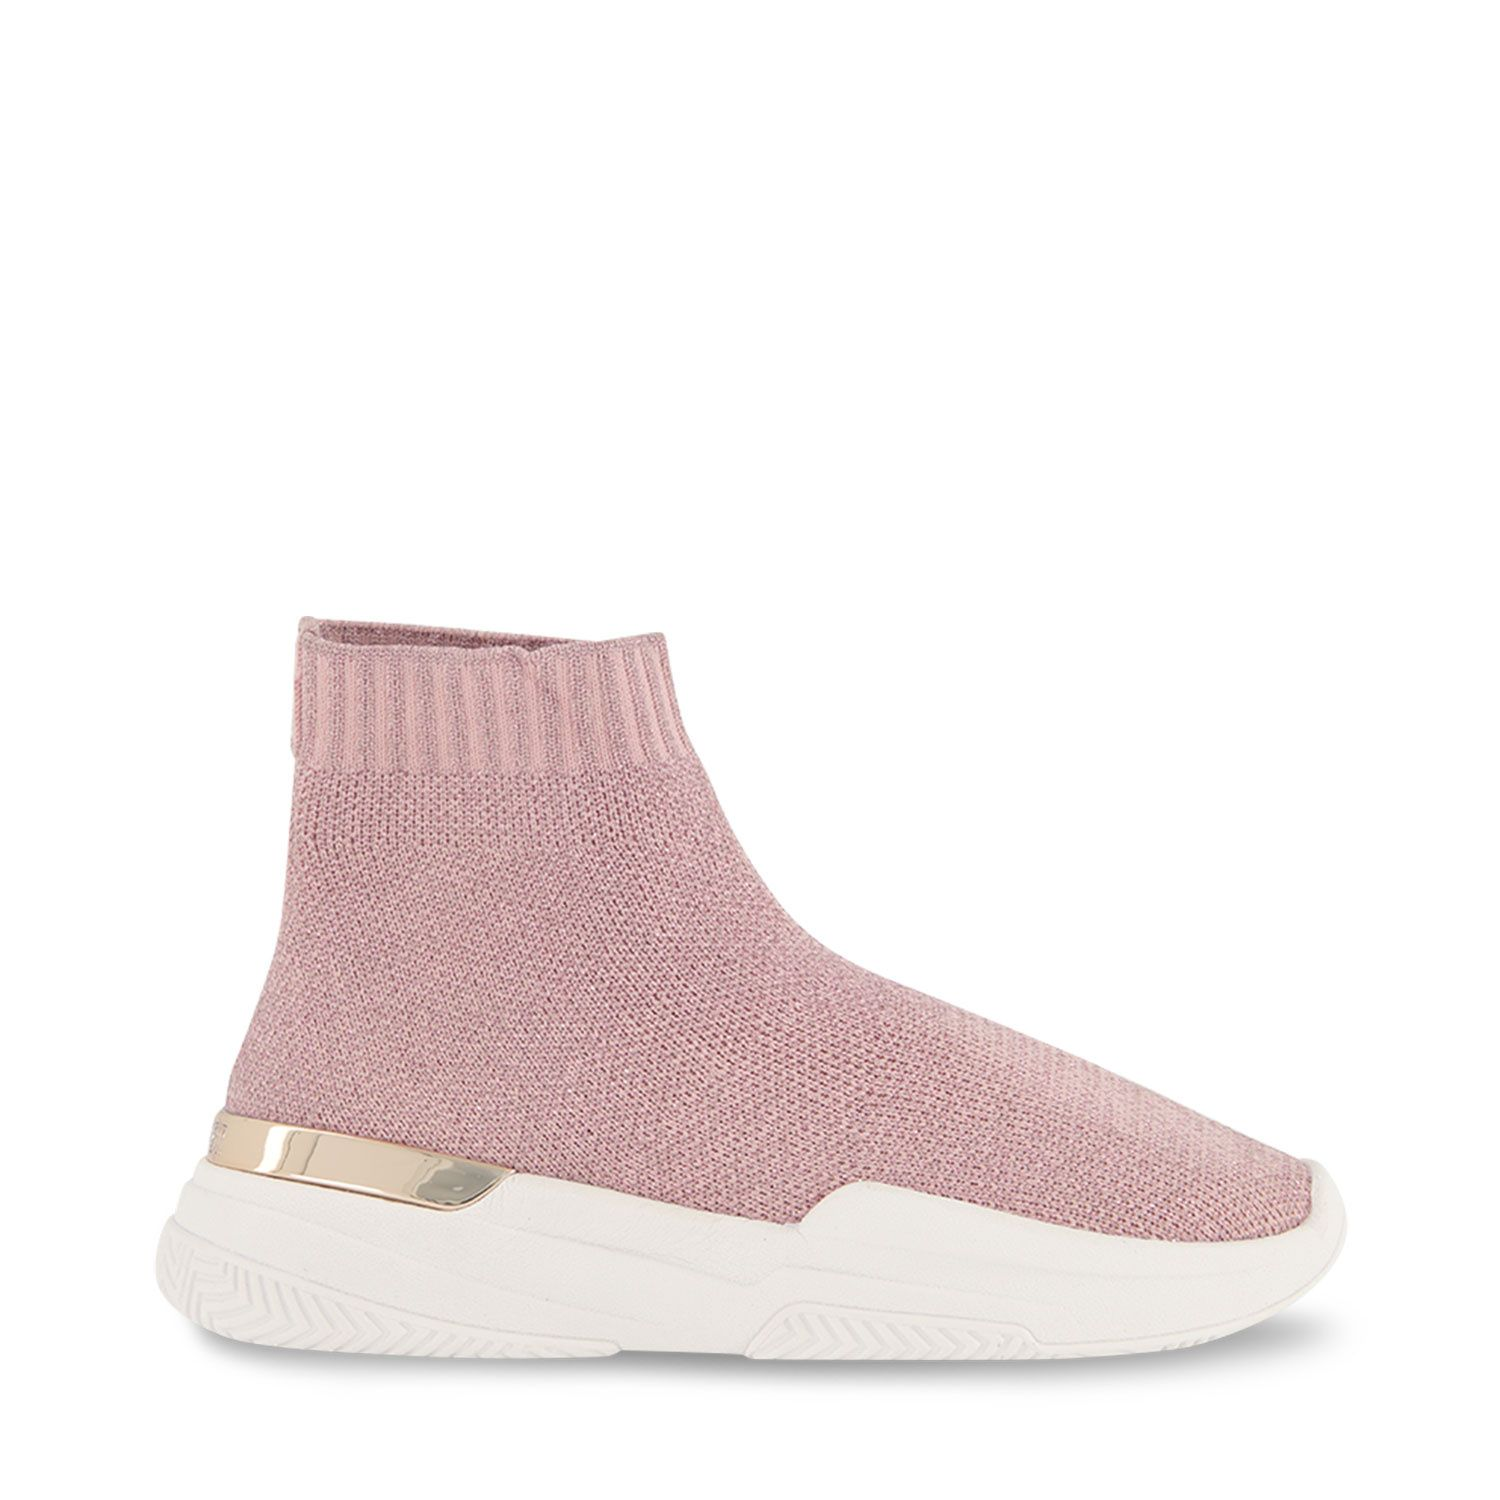 Picture of Mallet MK3030PNKGLT kids sneakers light pink